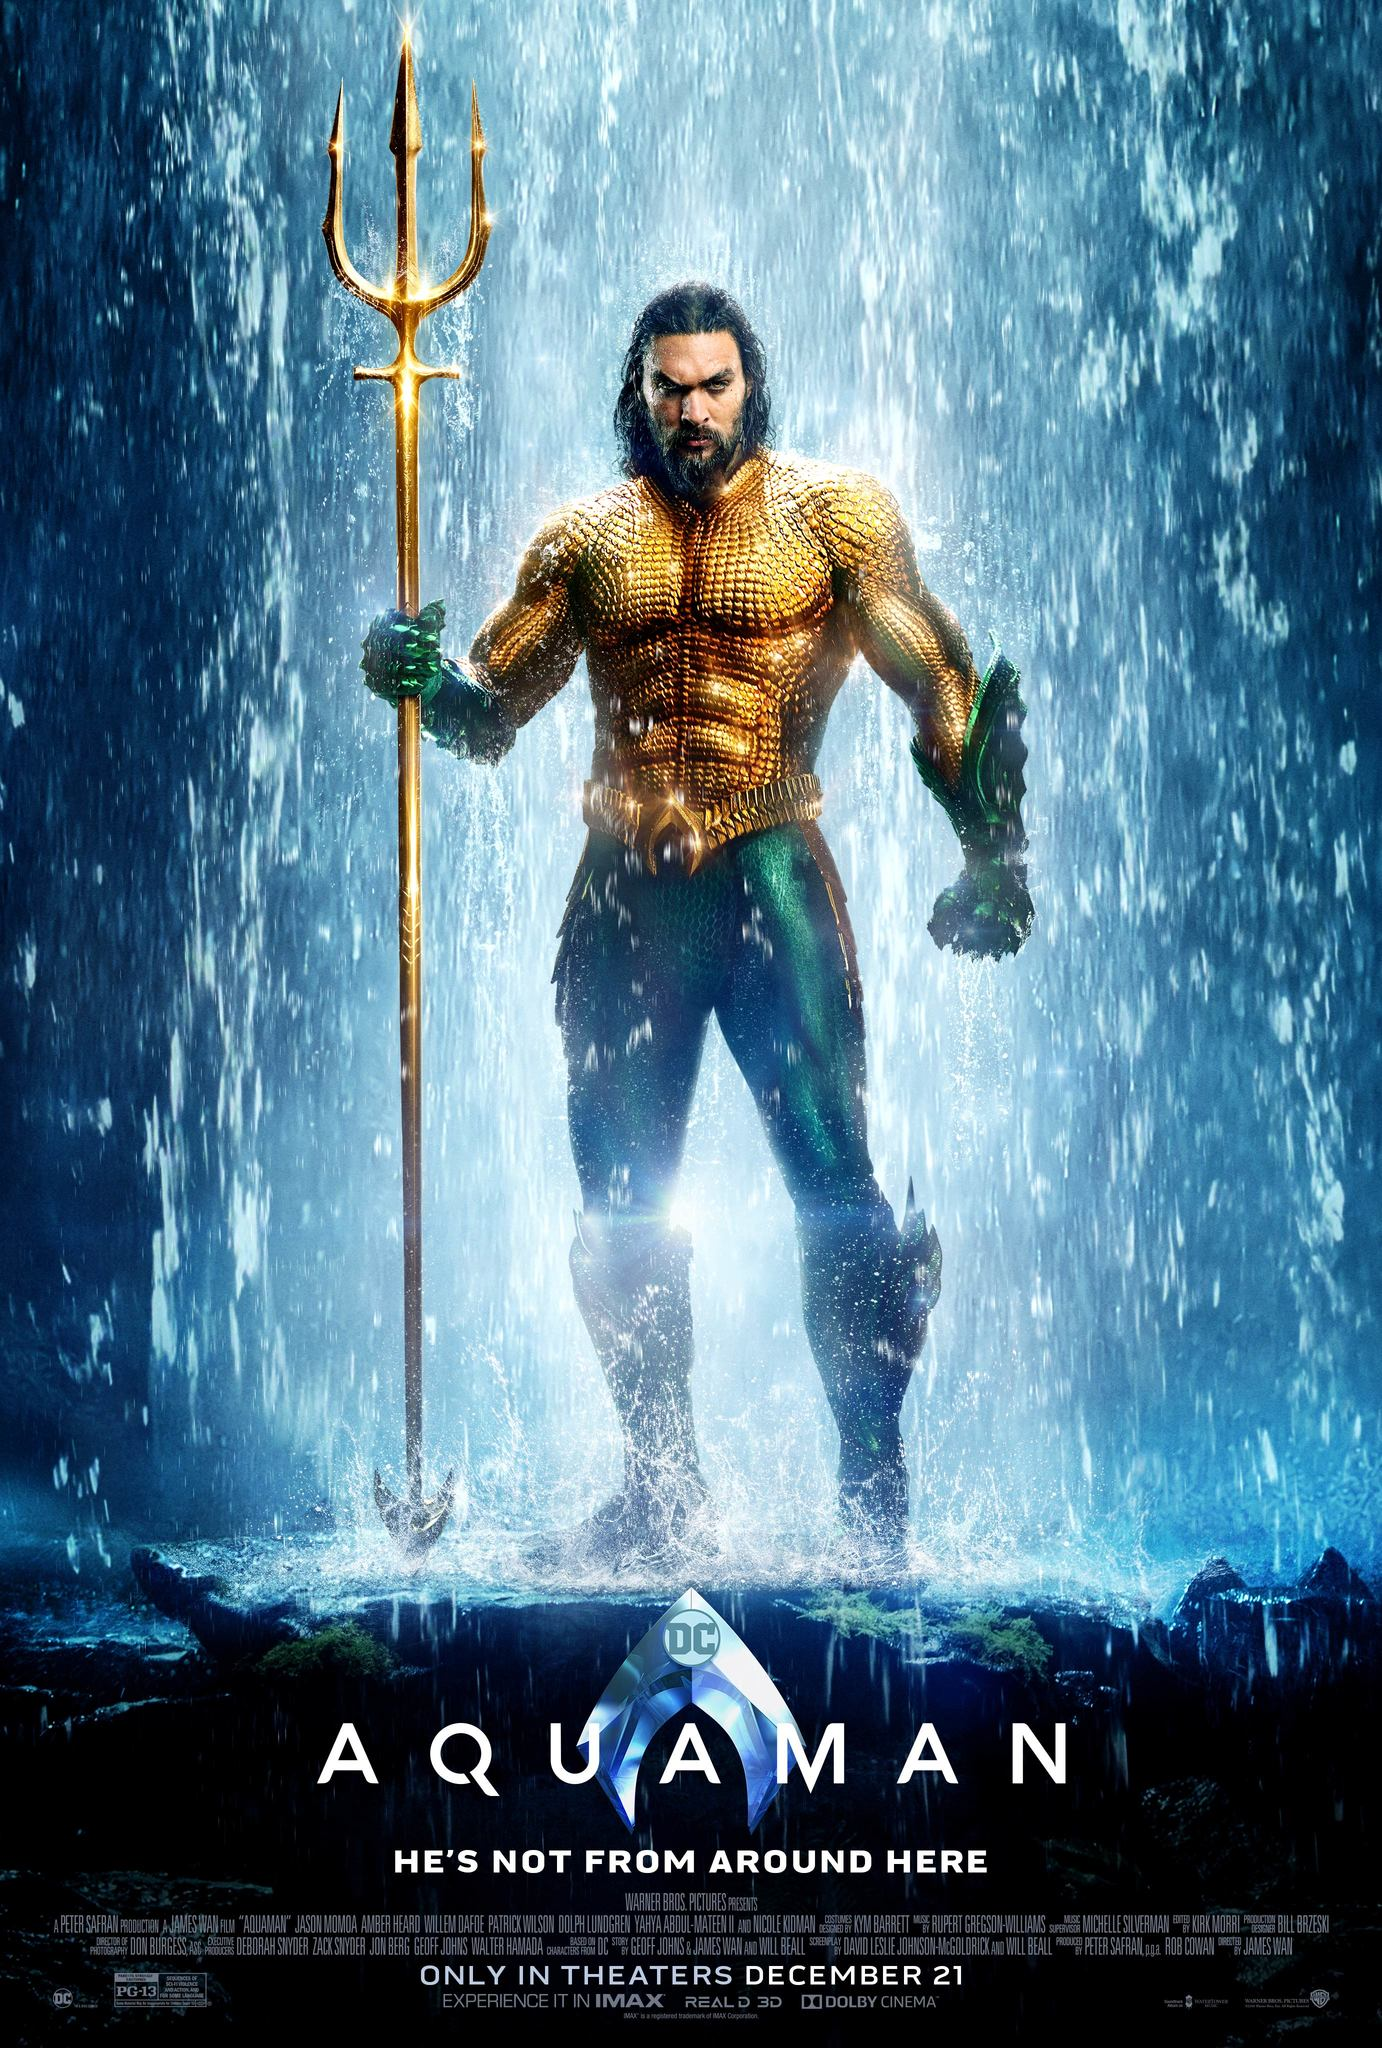 Mild-Mannered Movie Review… - Join us on a special edition of Mild-Mannered Movie Review as we chat about how much we enjoyed Aquaman even if some fans and critics didn't. Enjoy!